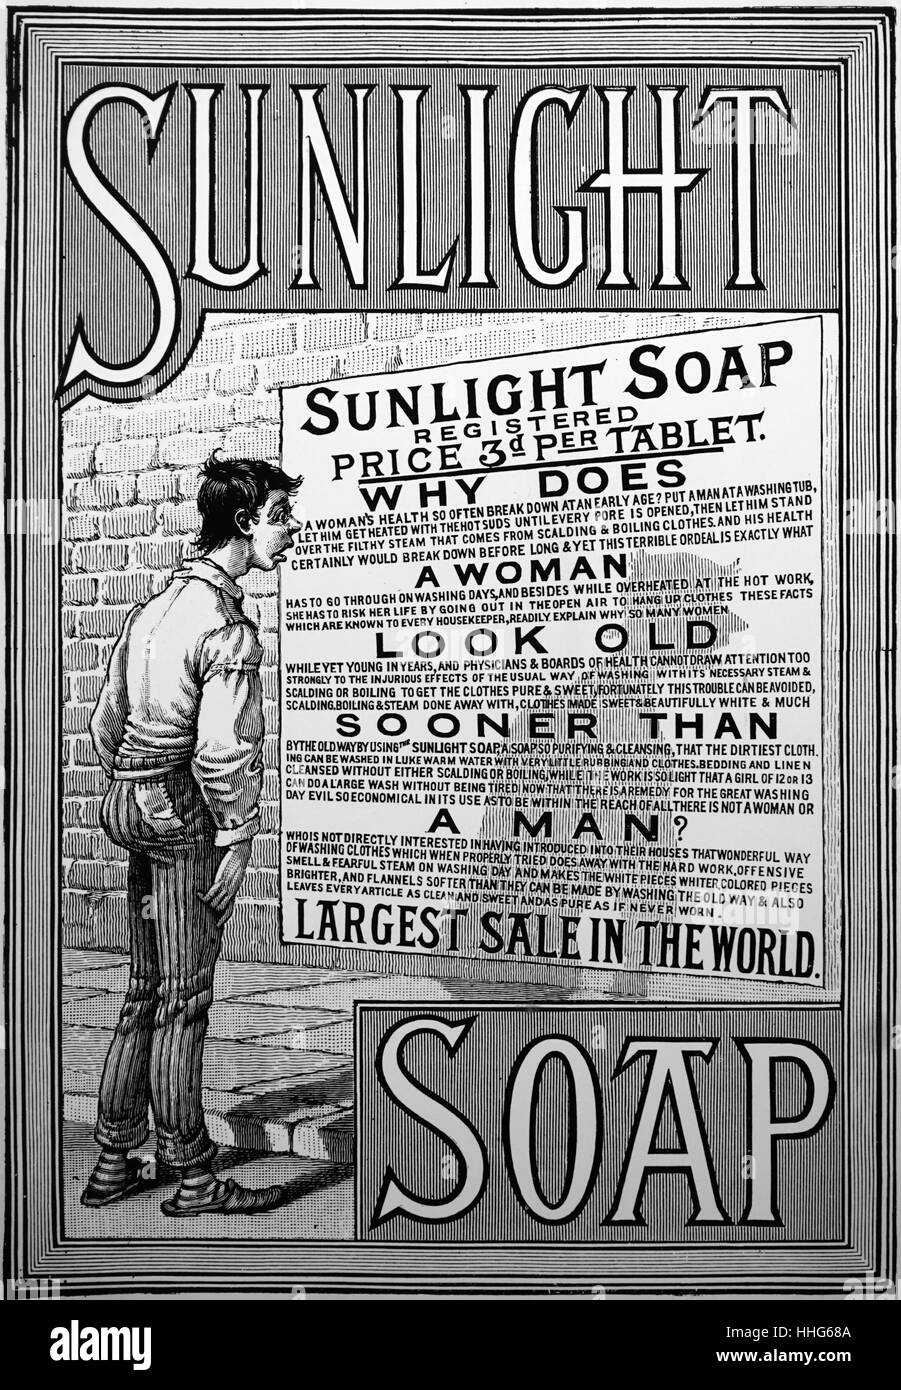 Advertisement of sunlight soap in 1889. - Stock Image